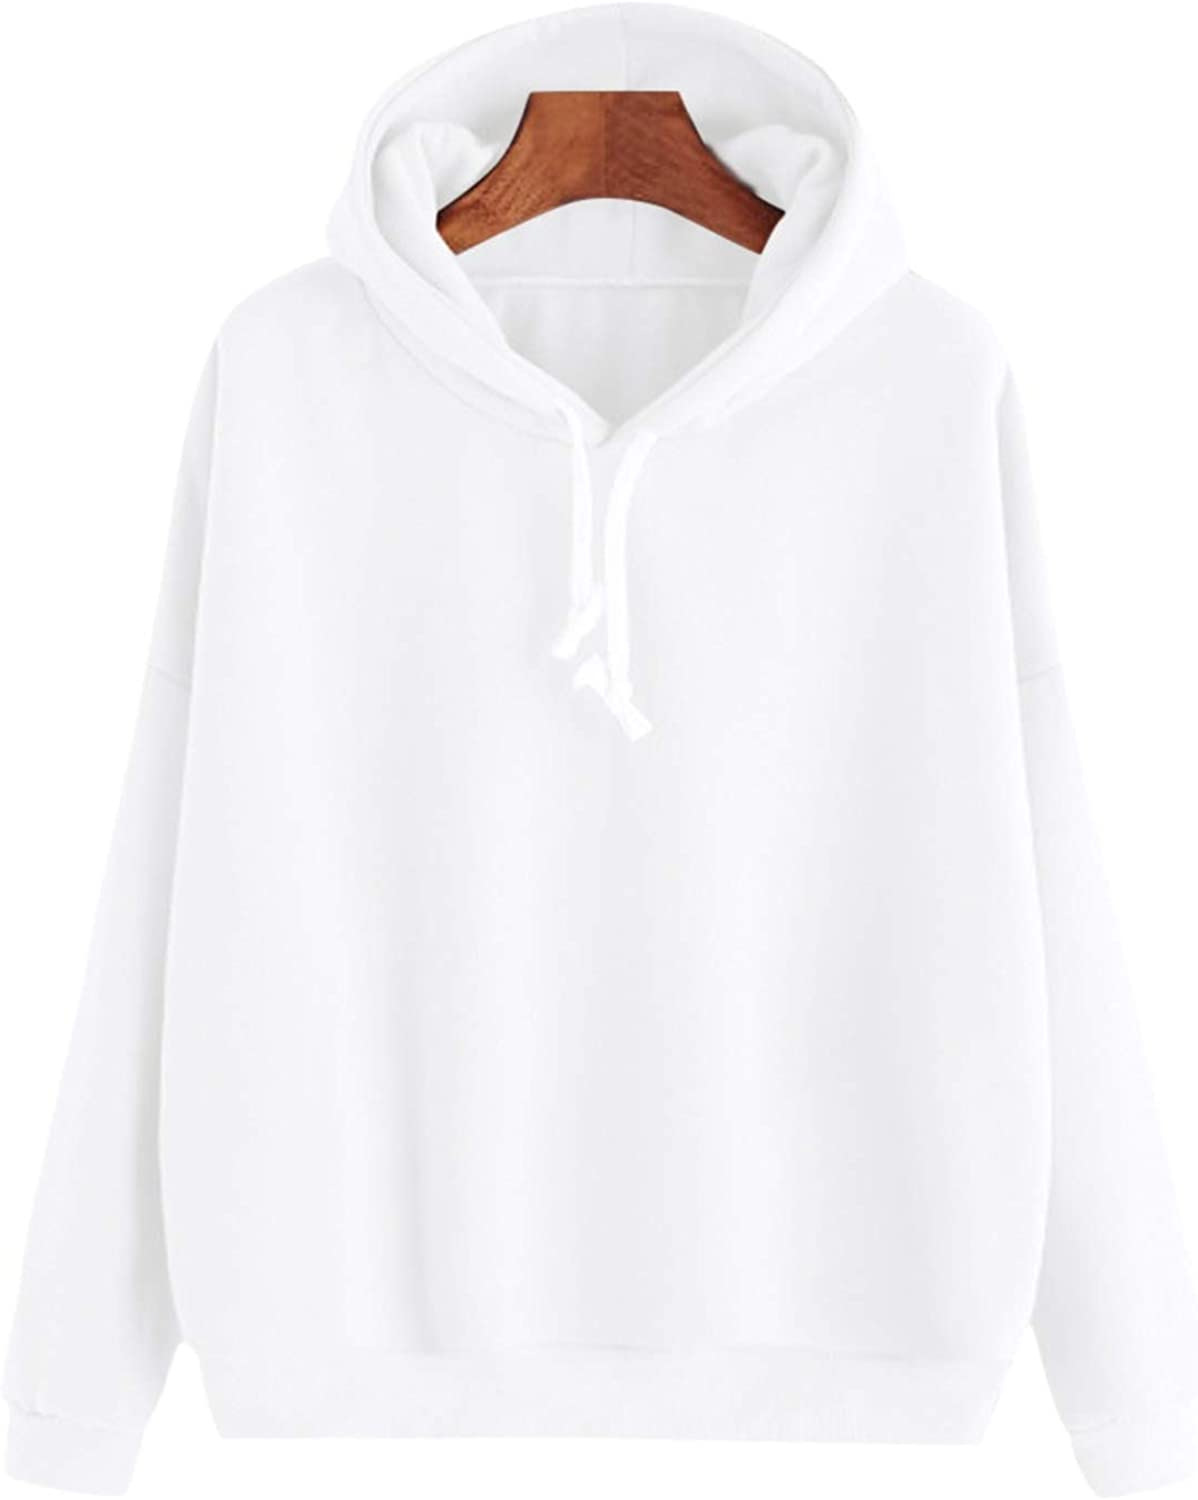 Dreamedge Womens Gown with A Hood Hoodies Ladies Long Sleeve Casual Pullover Clothes Sweatshirt,White,XL,C